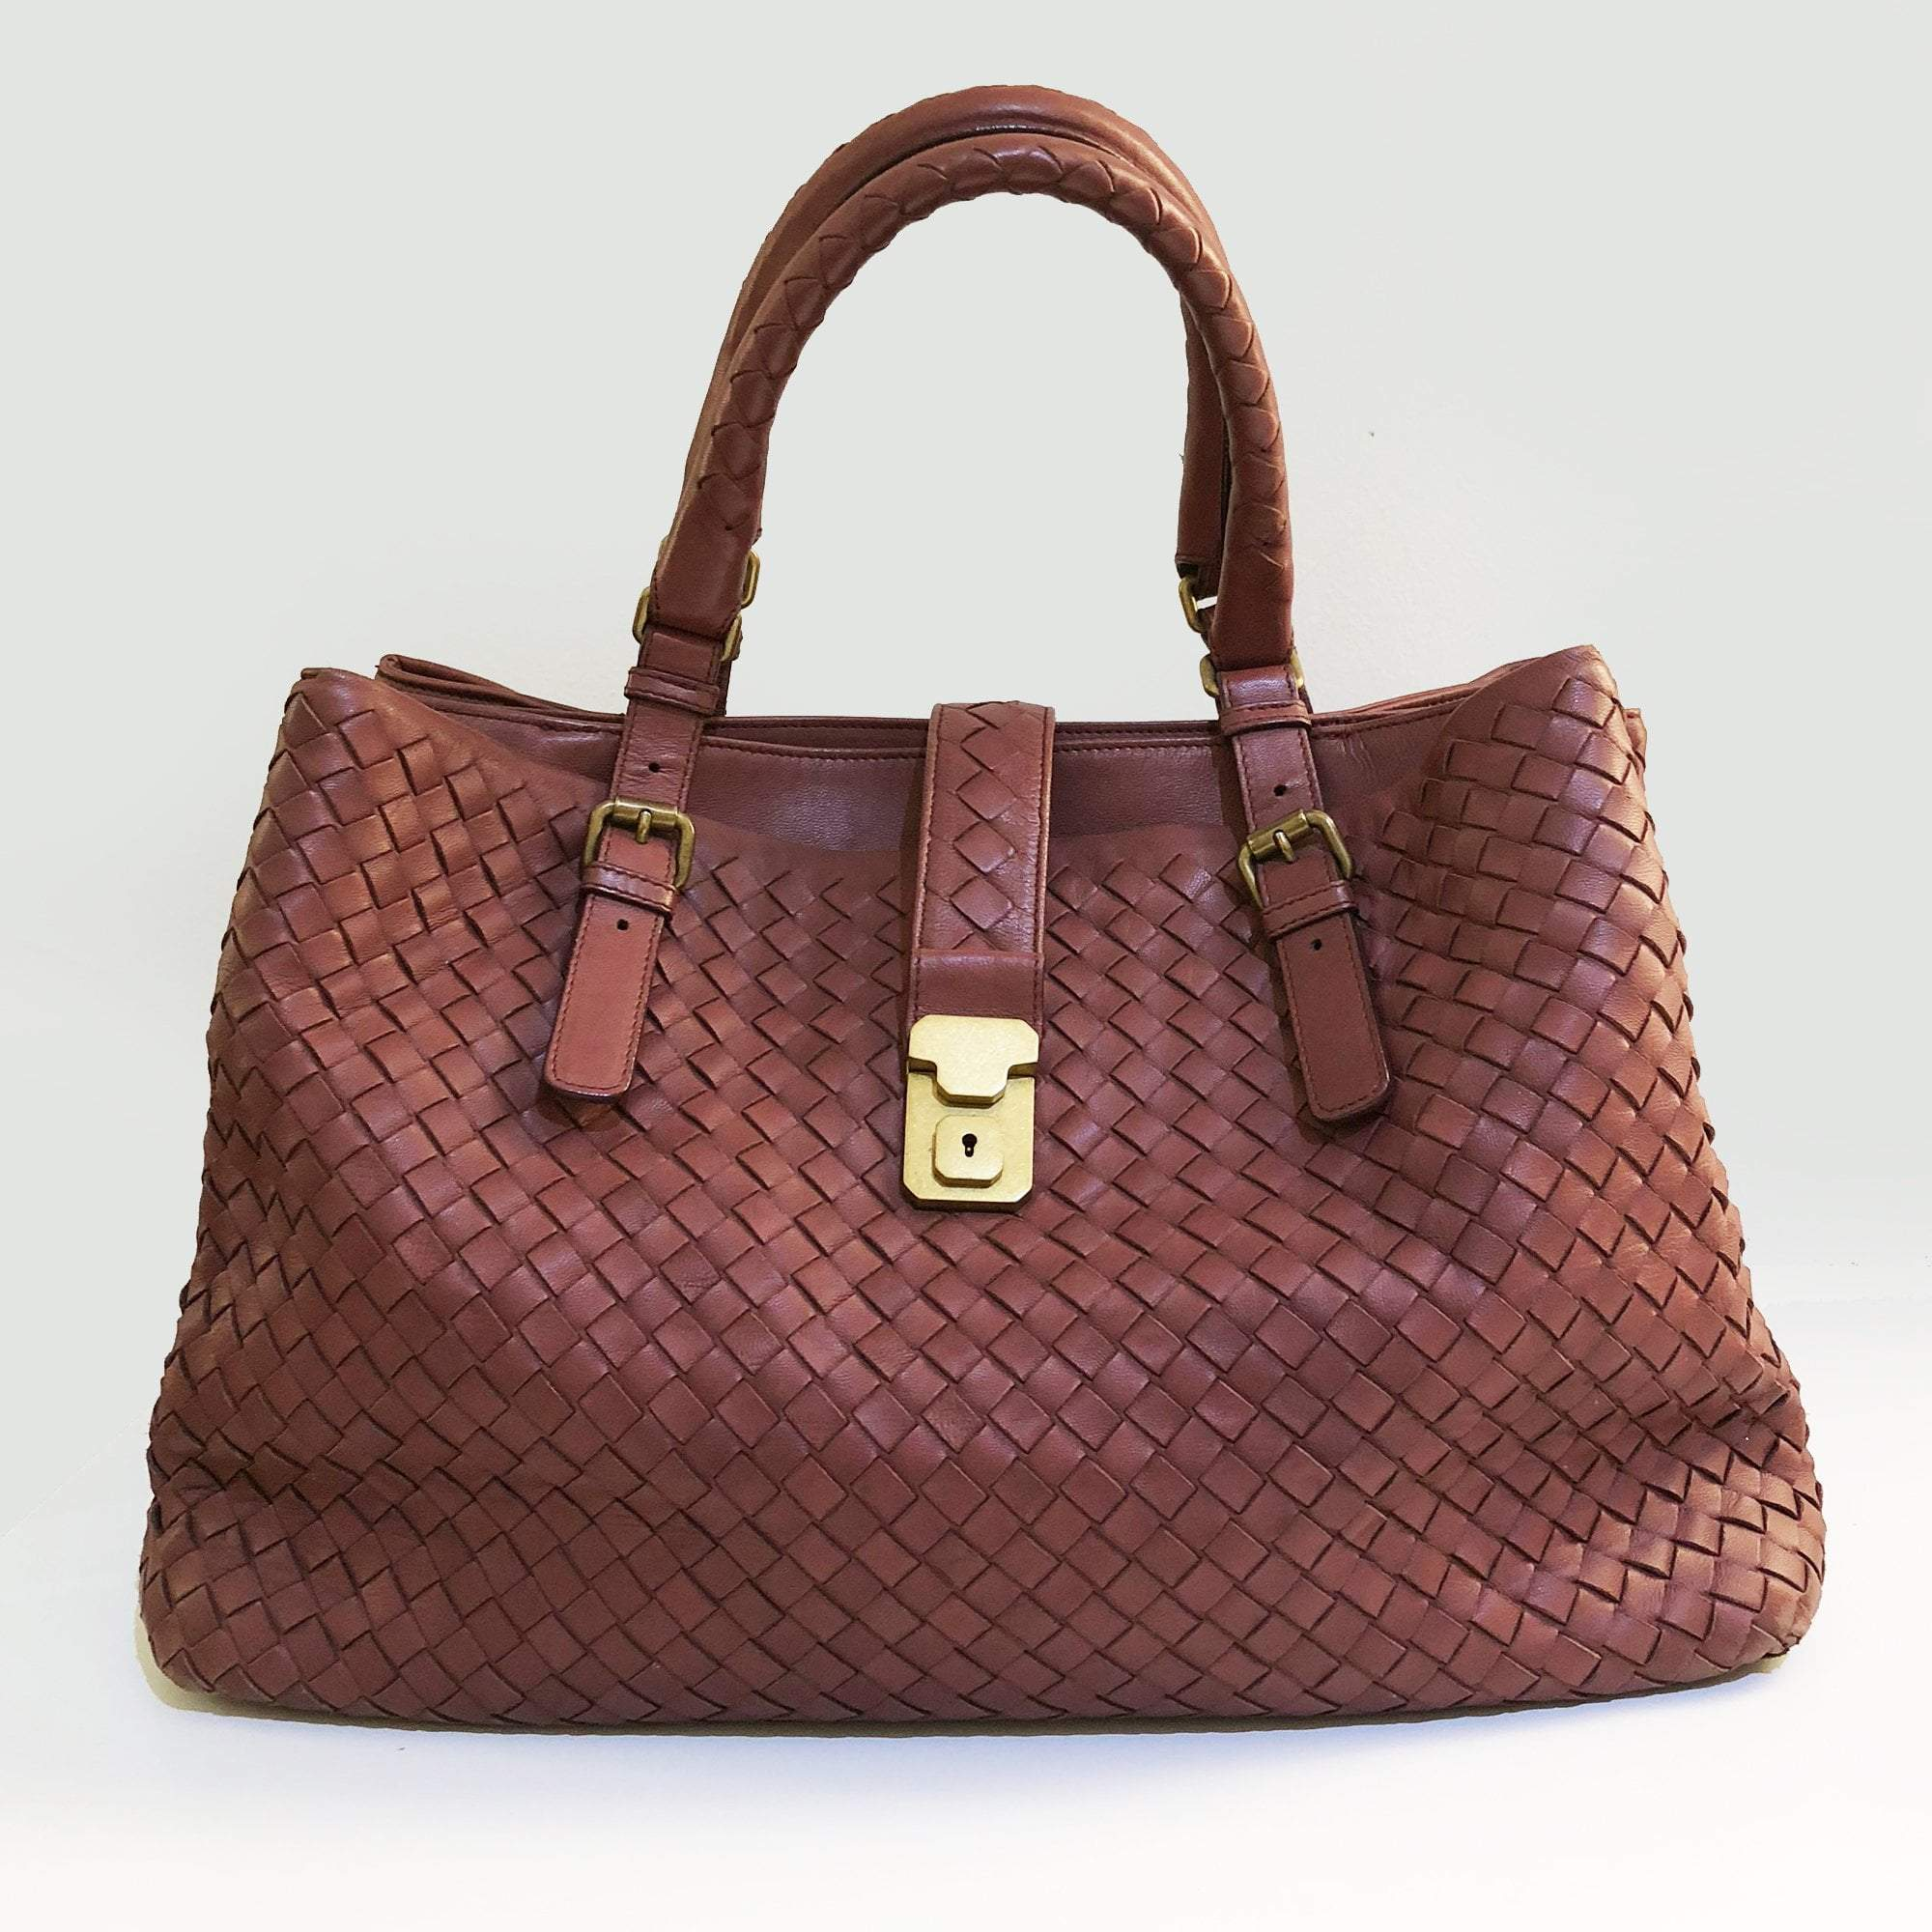 56870cb37e6e Bottega Veneta Maroon Roma Intrecciato Leather Tote Bag – Garderobe